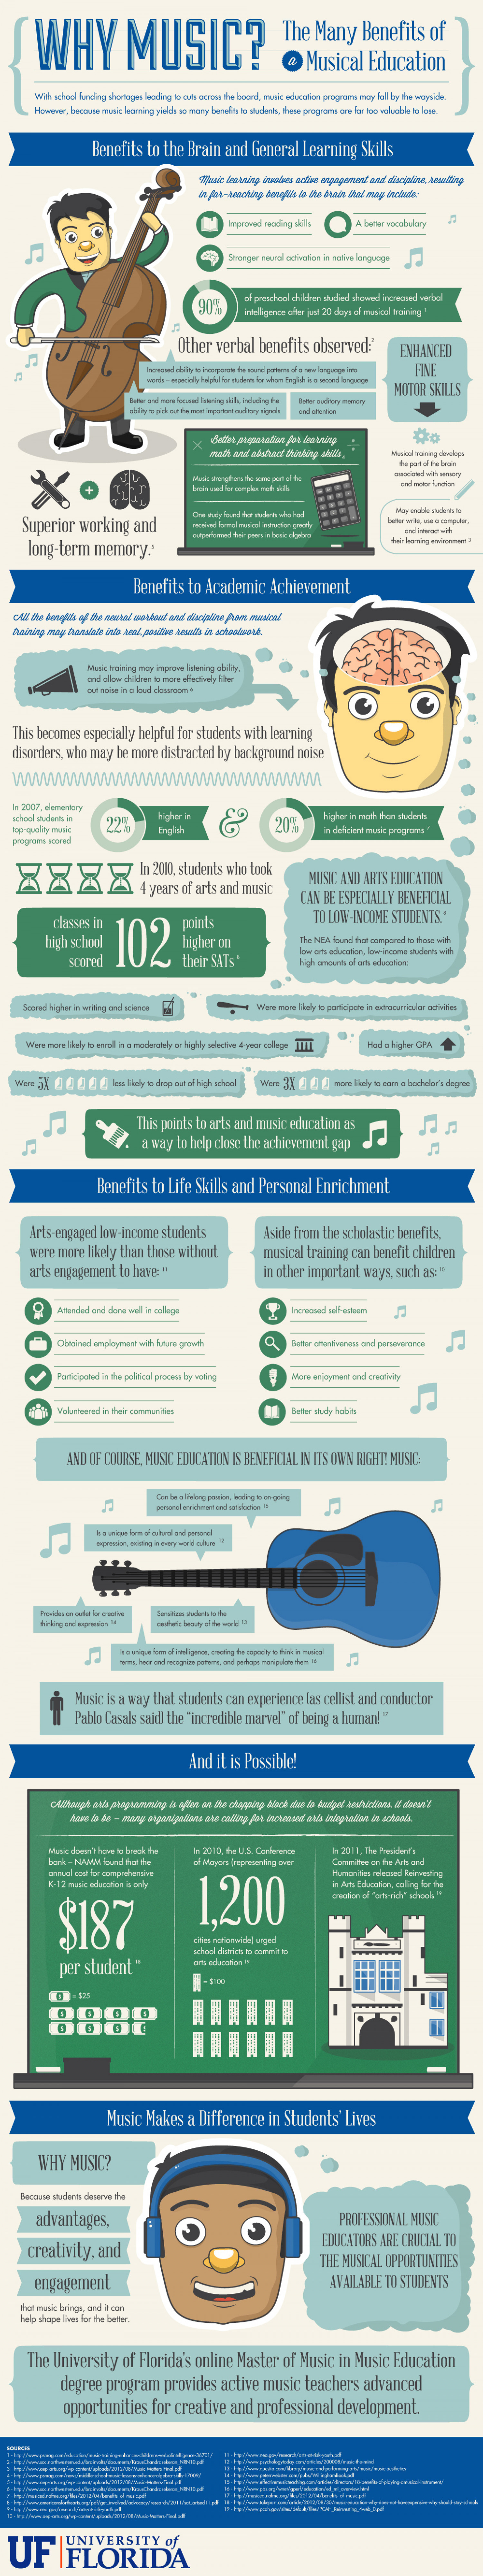 Why Music? The Many Benefits of Musical Education Infographic